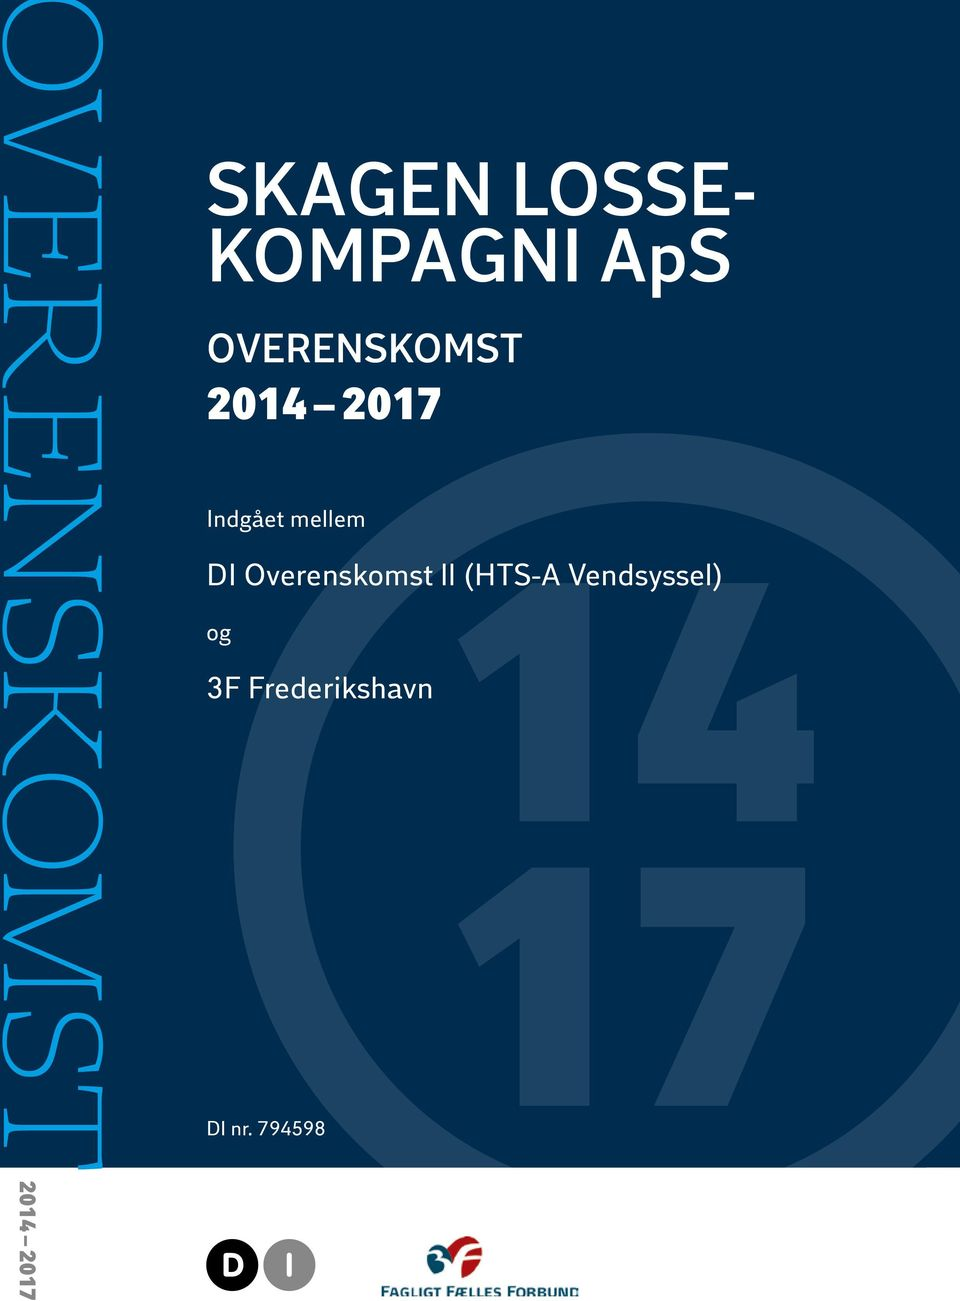 DI Overenskomst ll (HTS-A Vendsyssel)